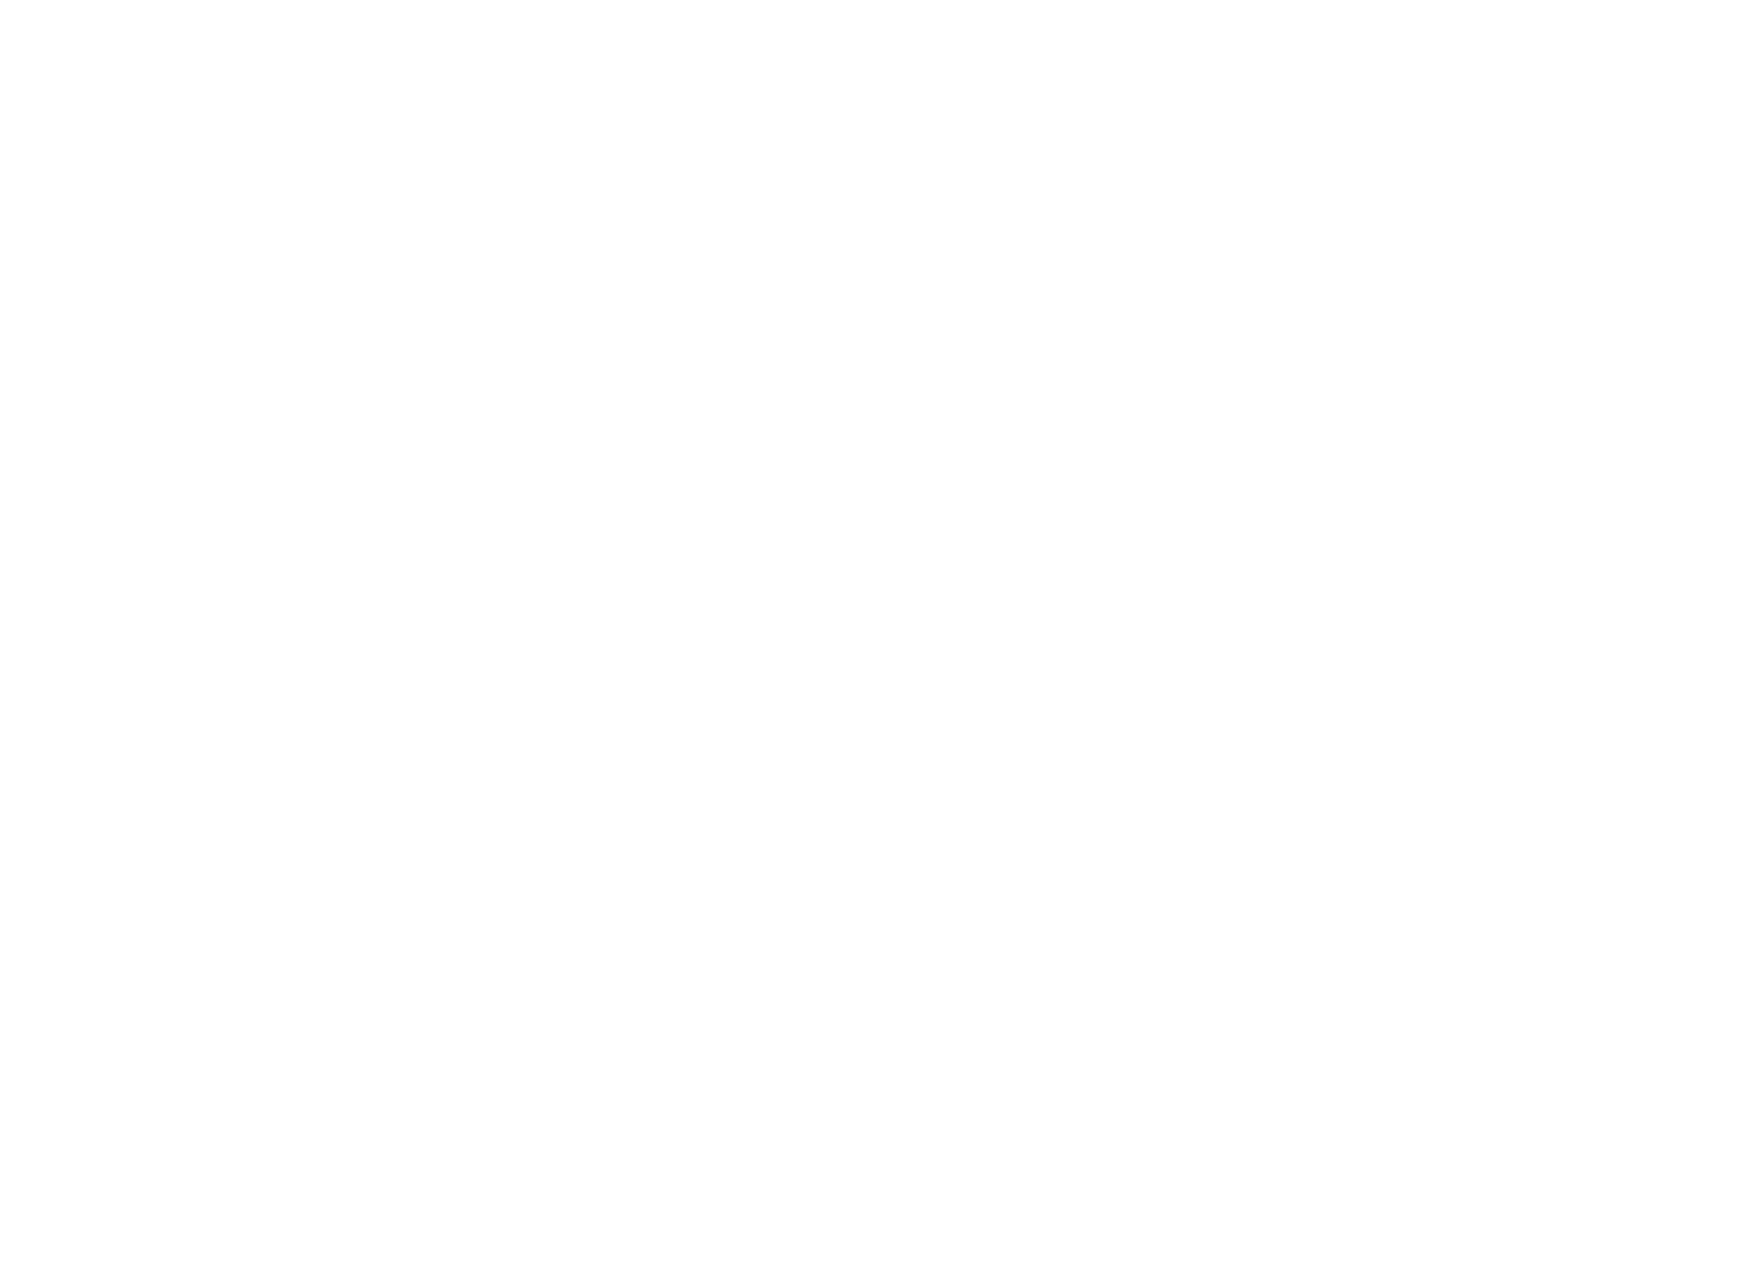 Bright white light png. Index of images lightglowpng